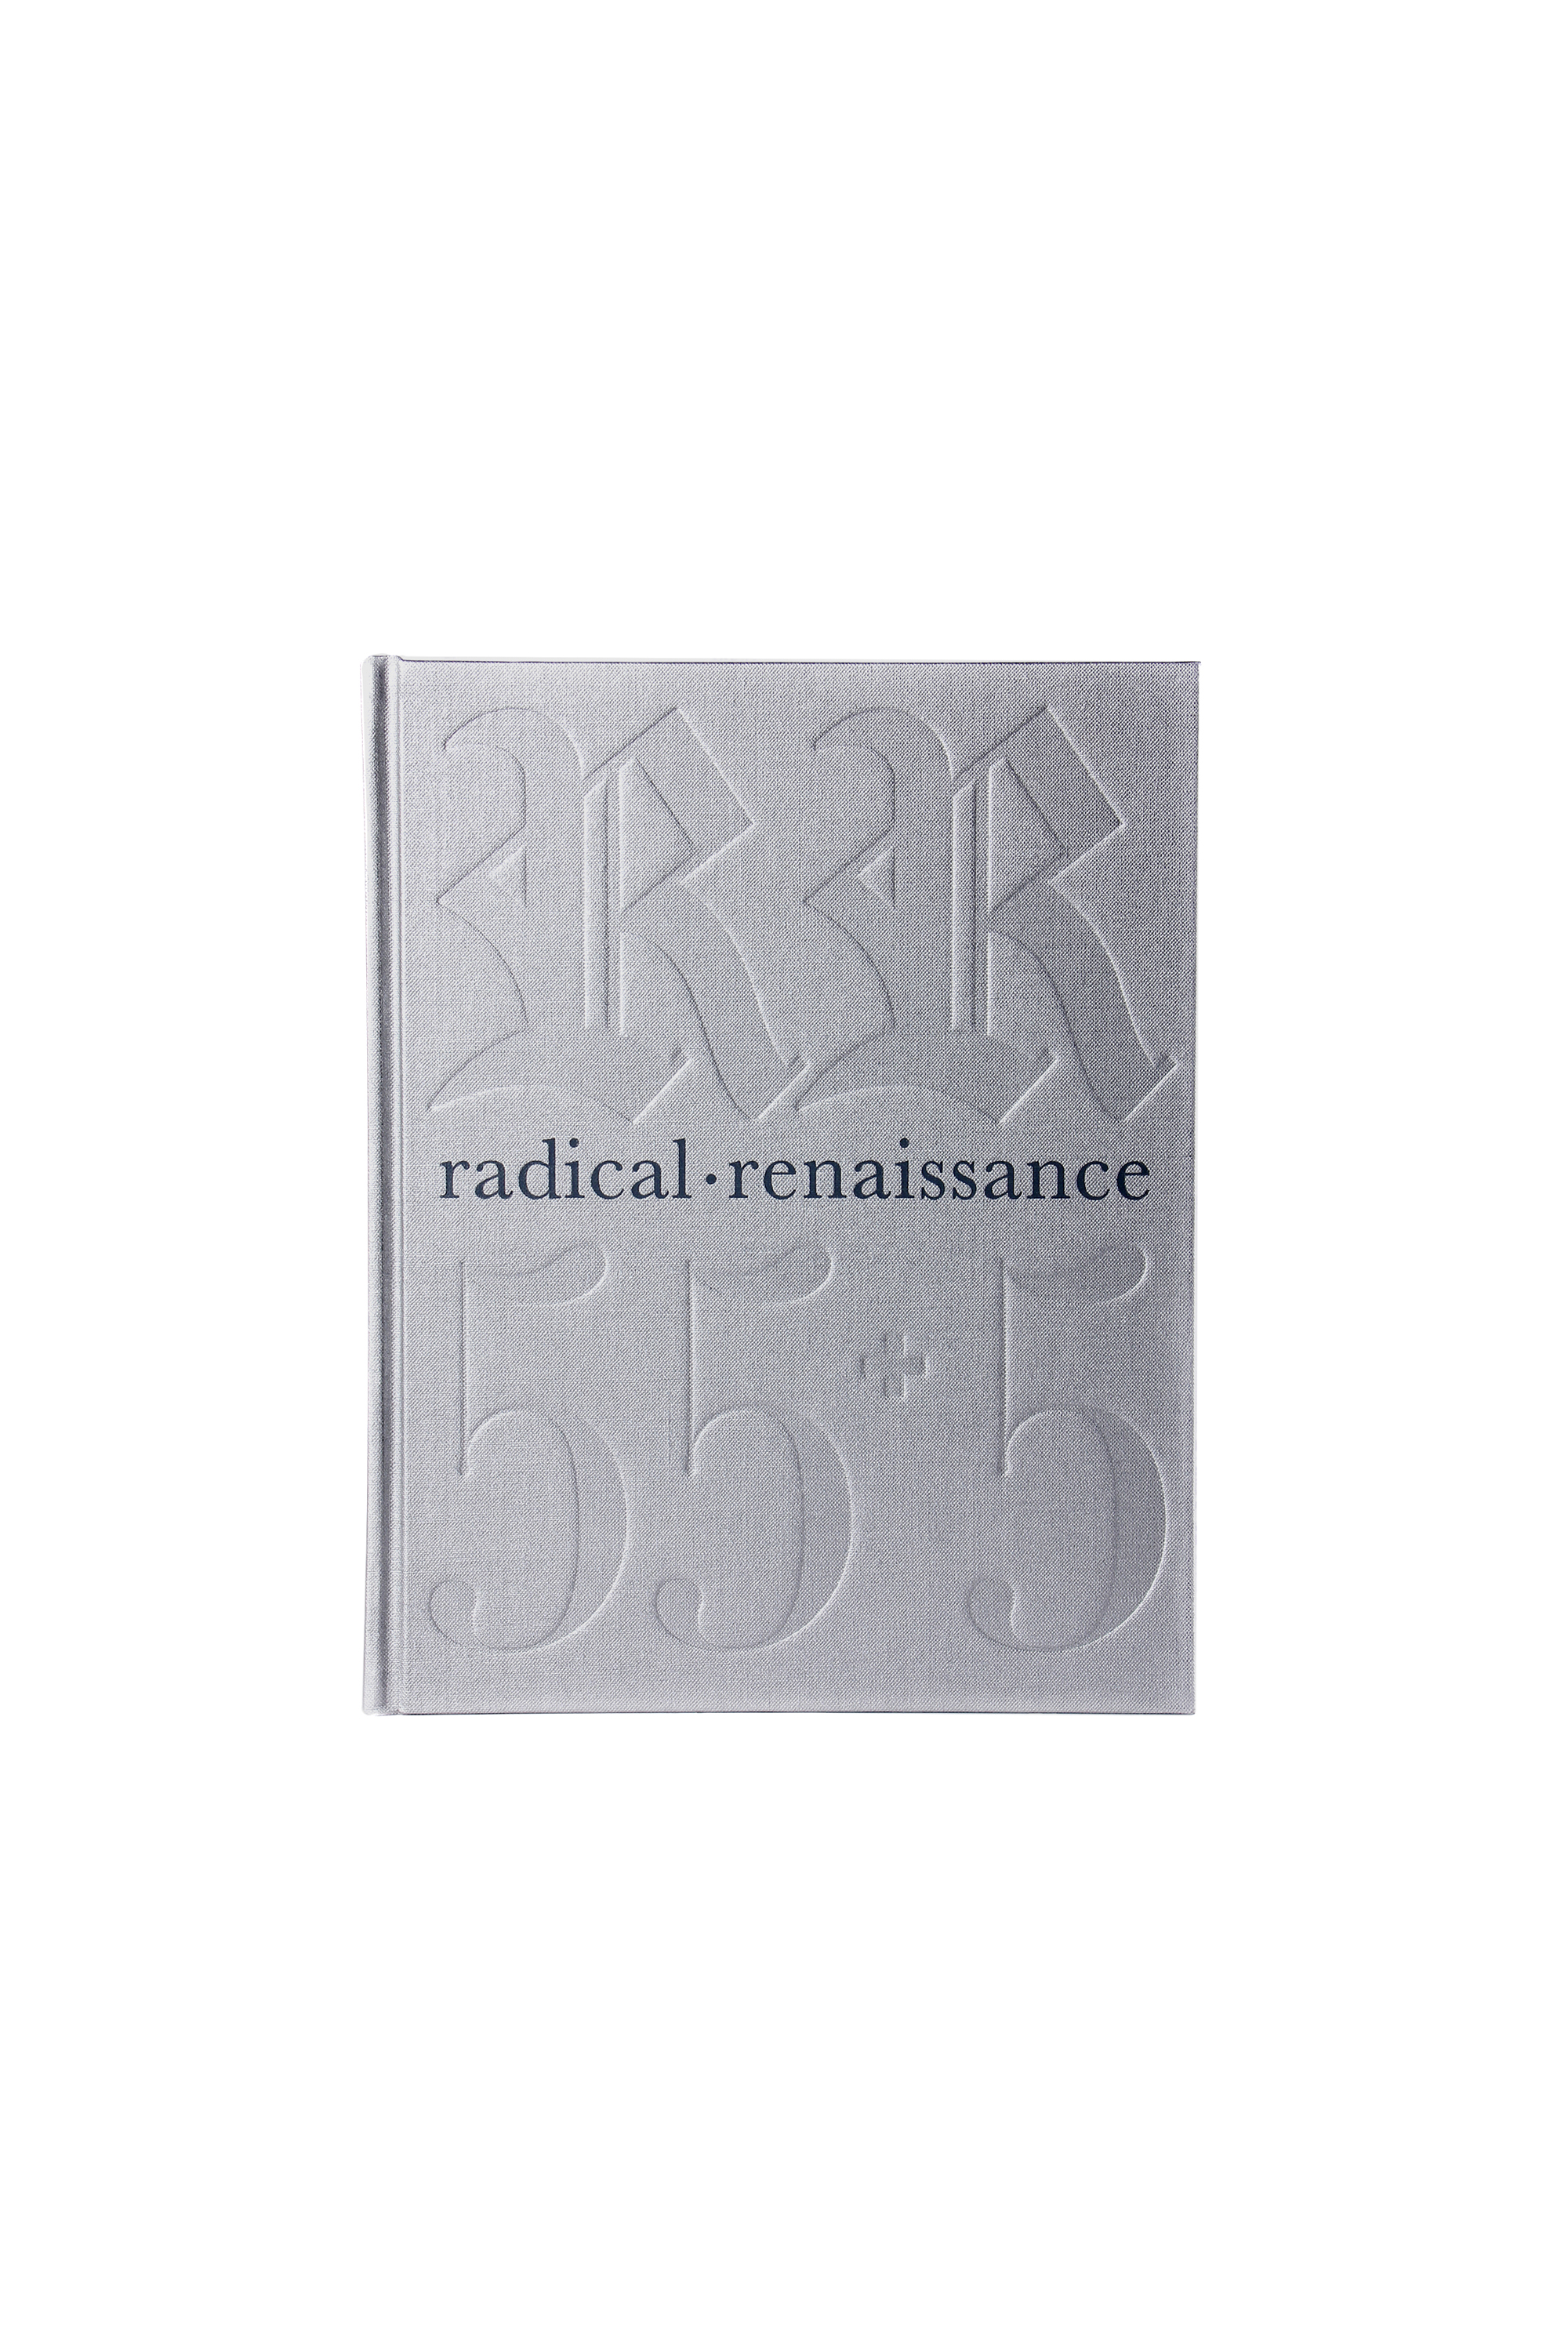 Diesel - Radical Renaissance 55+5 (signed by RR),  - Books - Image 1